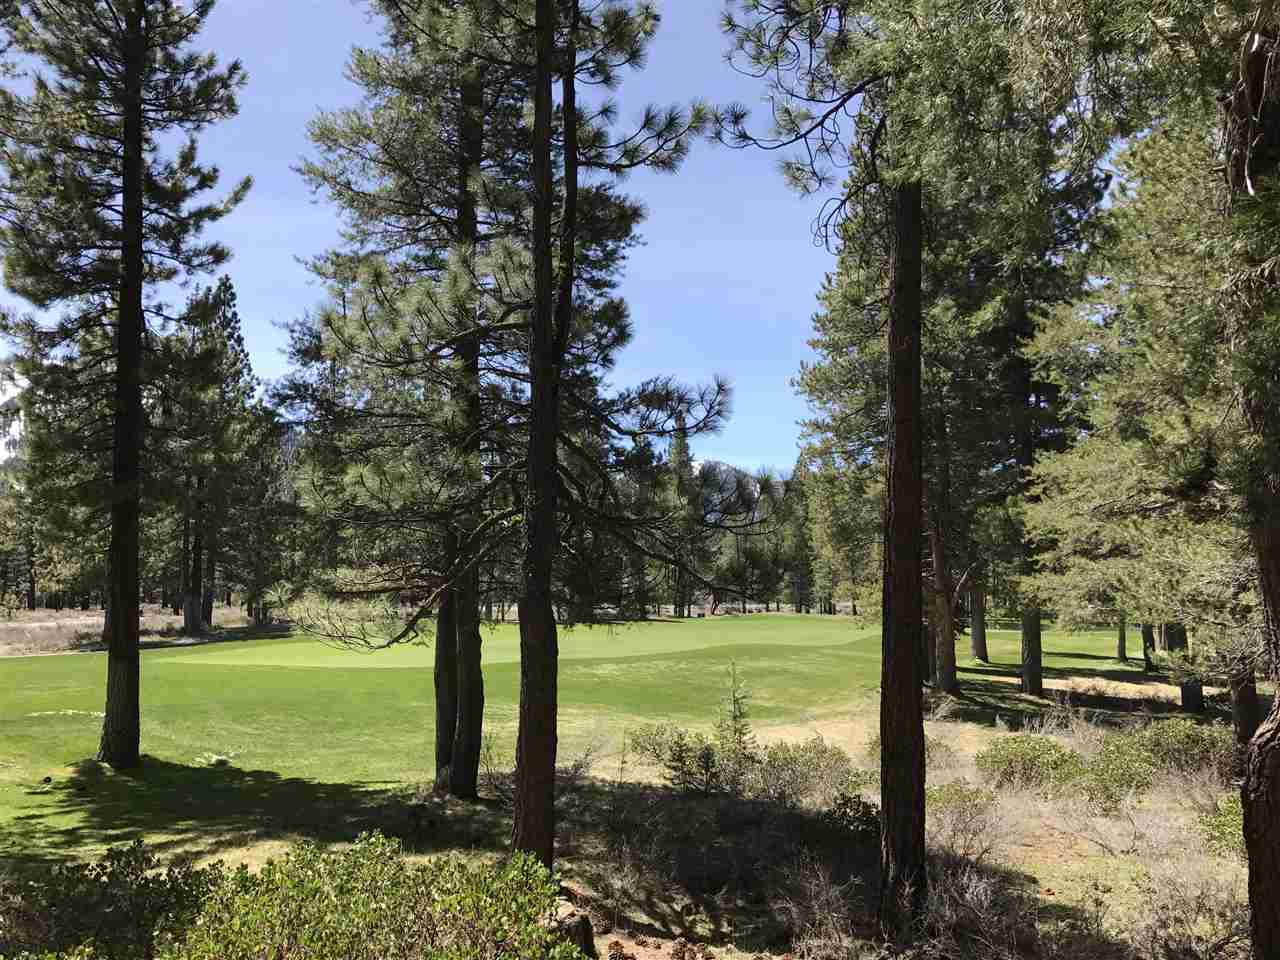 Terreno por un Venta en 8860 George Whittell 8860 George Whittell Truckee, California 96161 Estados Unidos